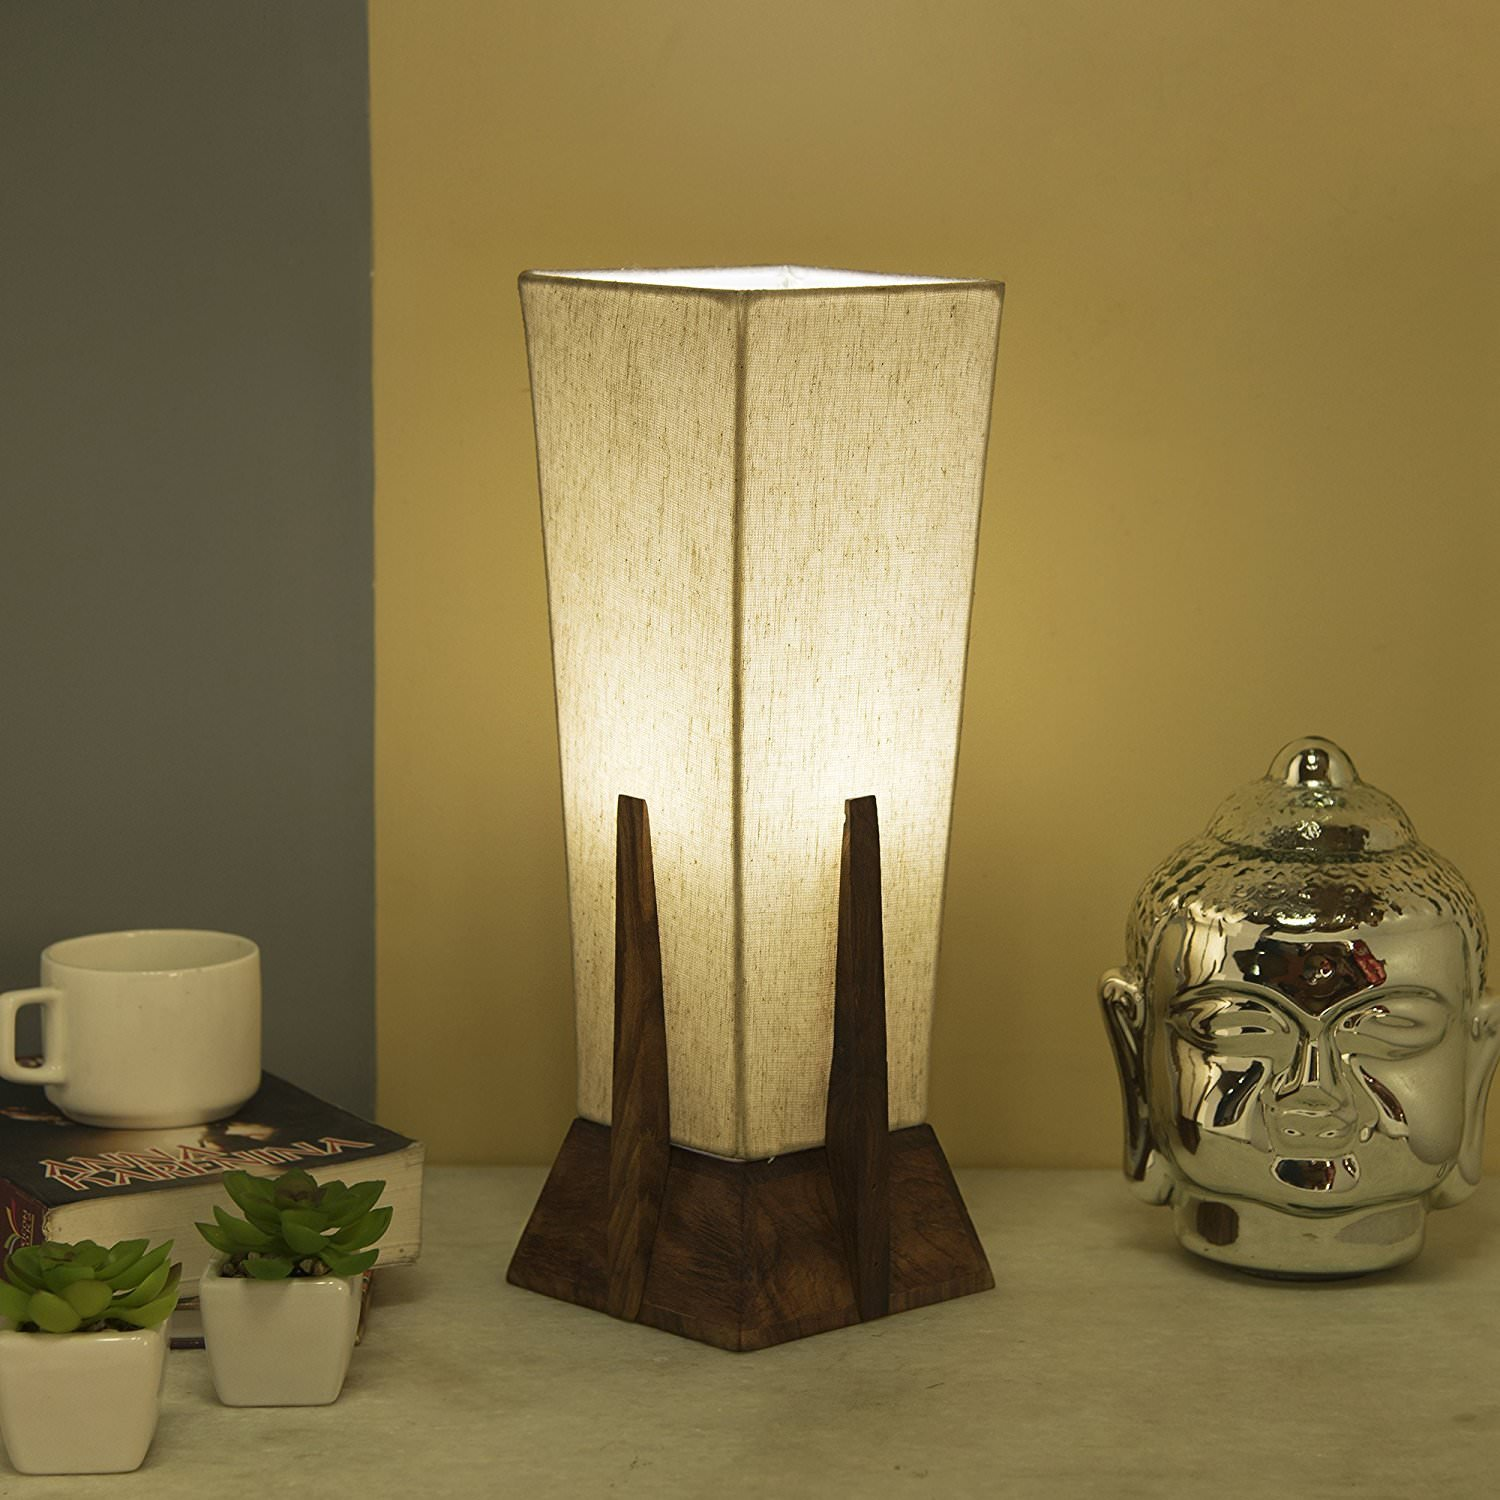 Hashcart Bedside Table Lamp, Solid Wood Table Lamp Bedside Desk Lamp with Square Flaxen Fabric Shade for Bedroom, Dresser, Living Room, Kids Room, College Dorm, Coffee Table, Bookcase